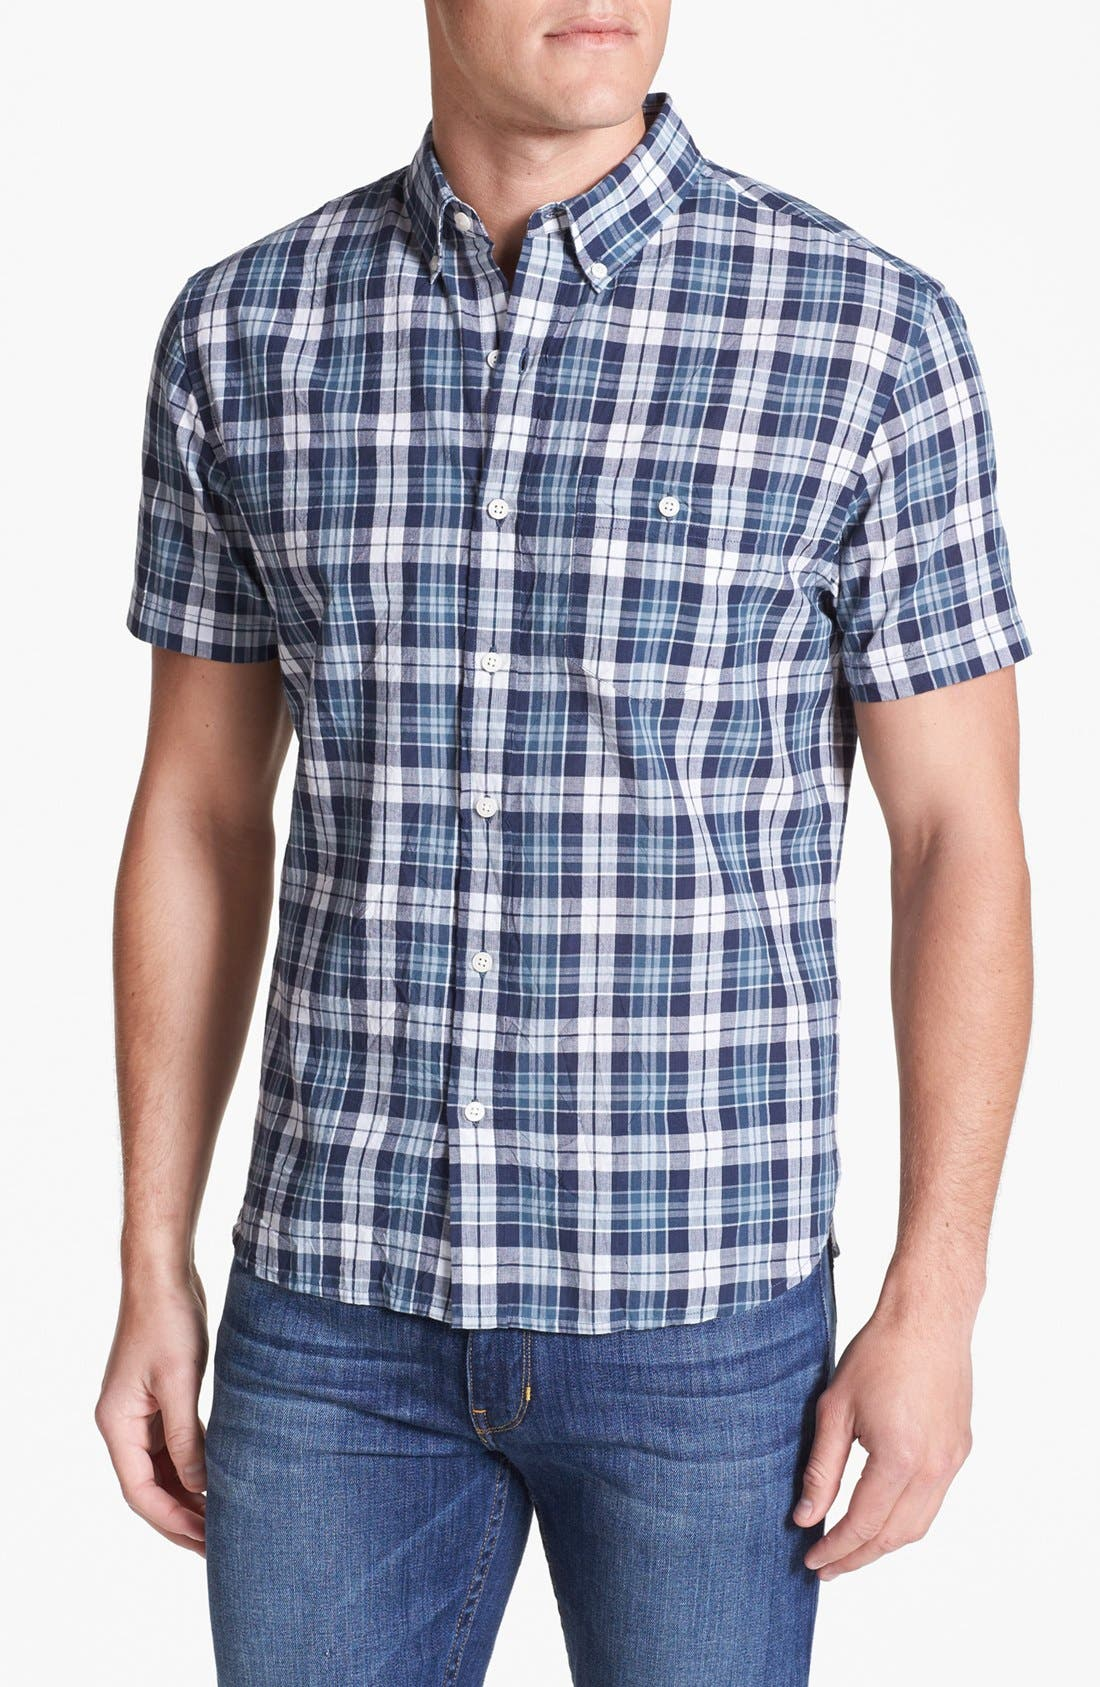 Main Image - Bonobos Madras Plaid Standard Fit Short Sleeve Sport Shirt